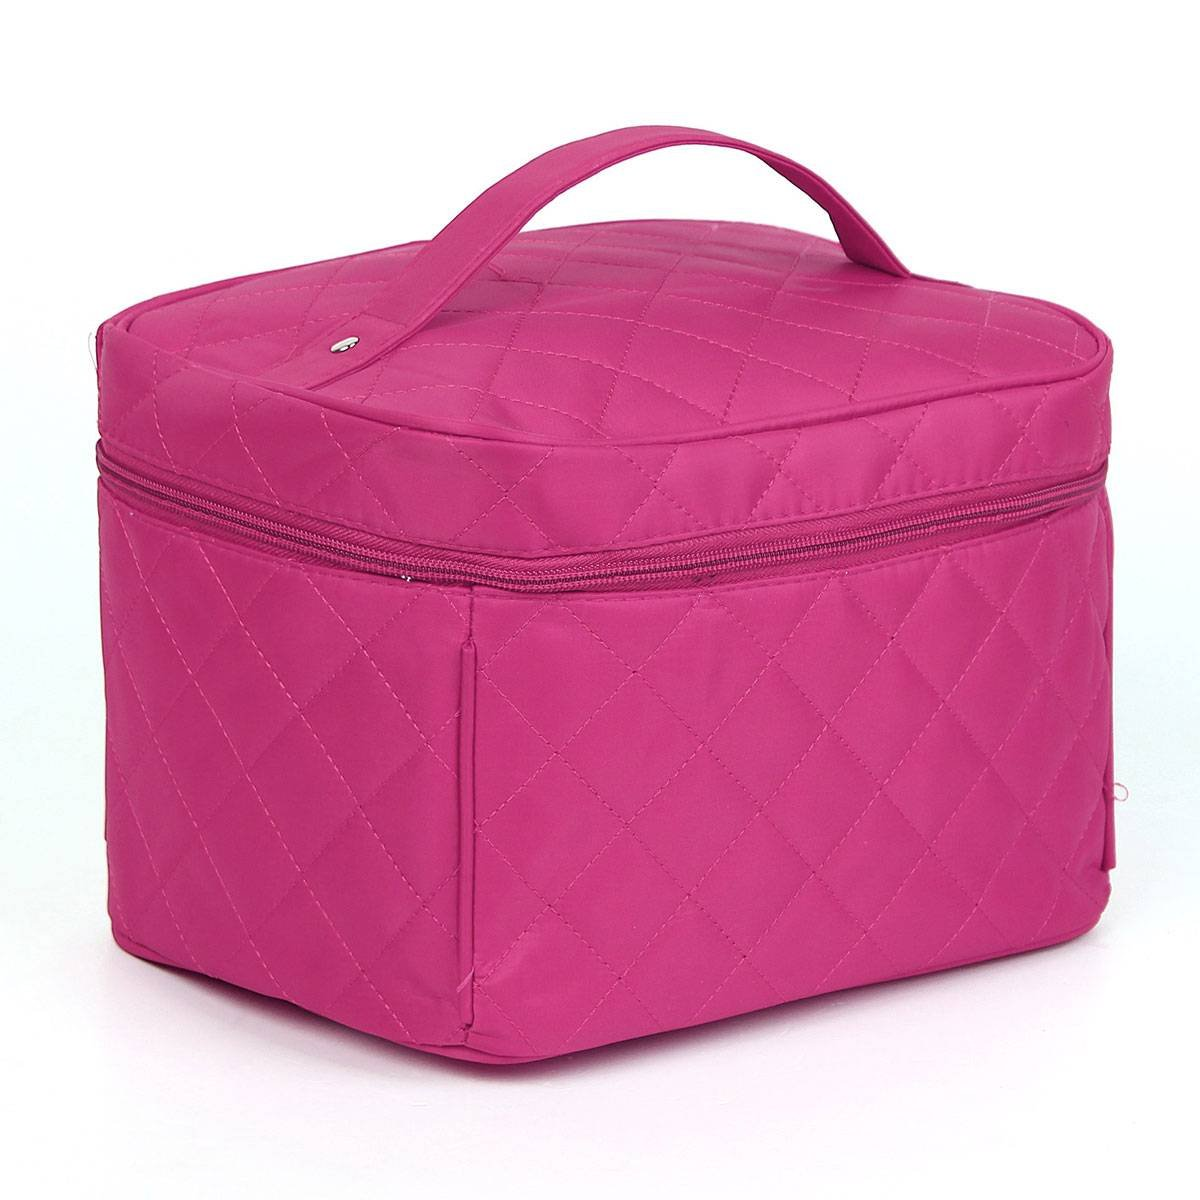 KINGSO Rose Red Lady Makeup Organiser Cosmetic Container Pouch Case Box Large Capacity Portable Toiletry Travel Bag Girl KINGSO Co. Ltd